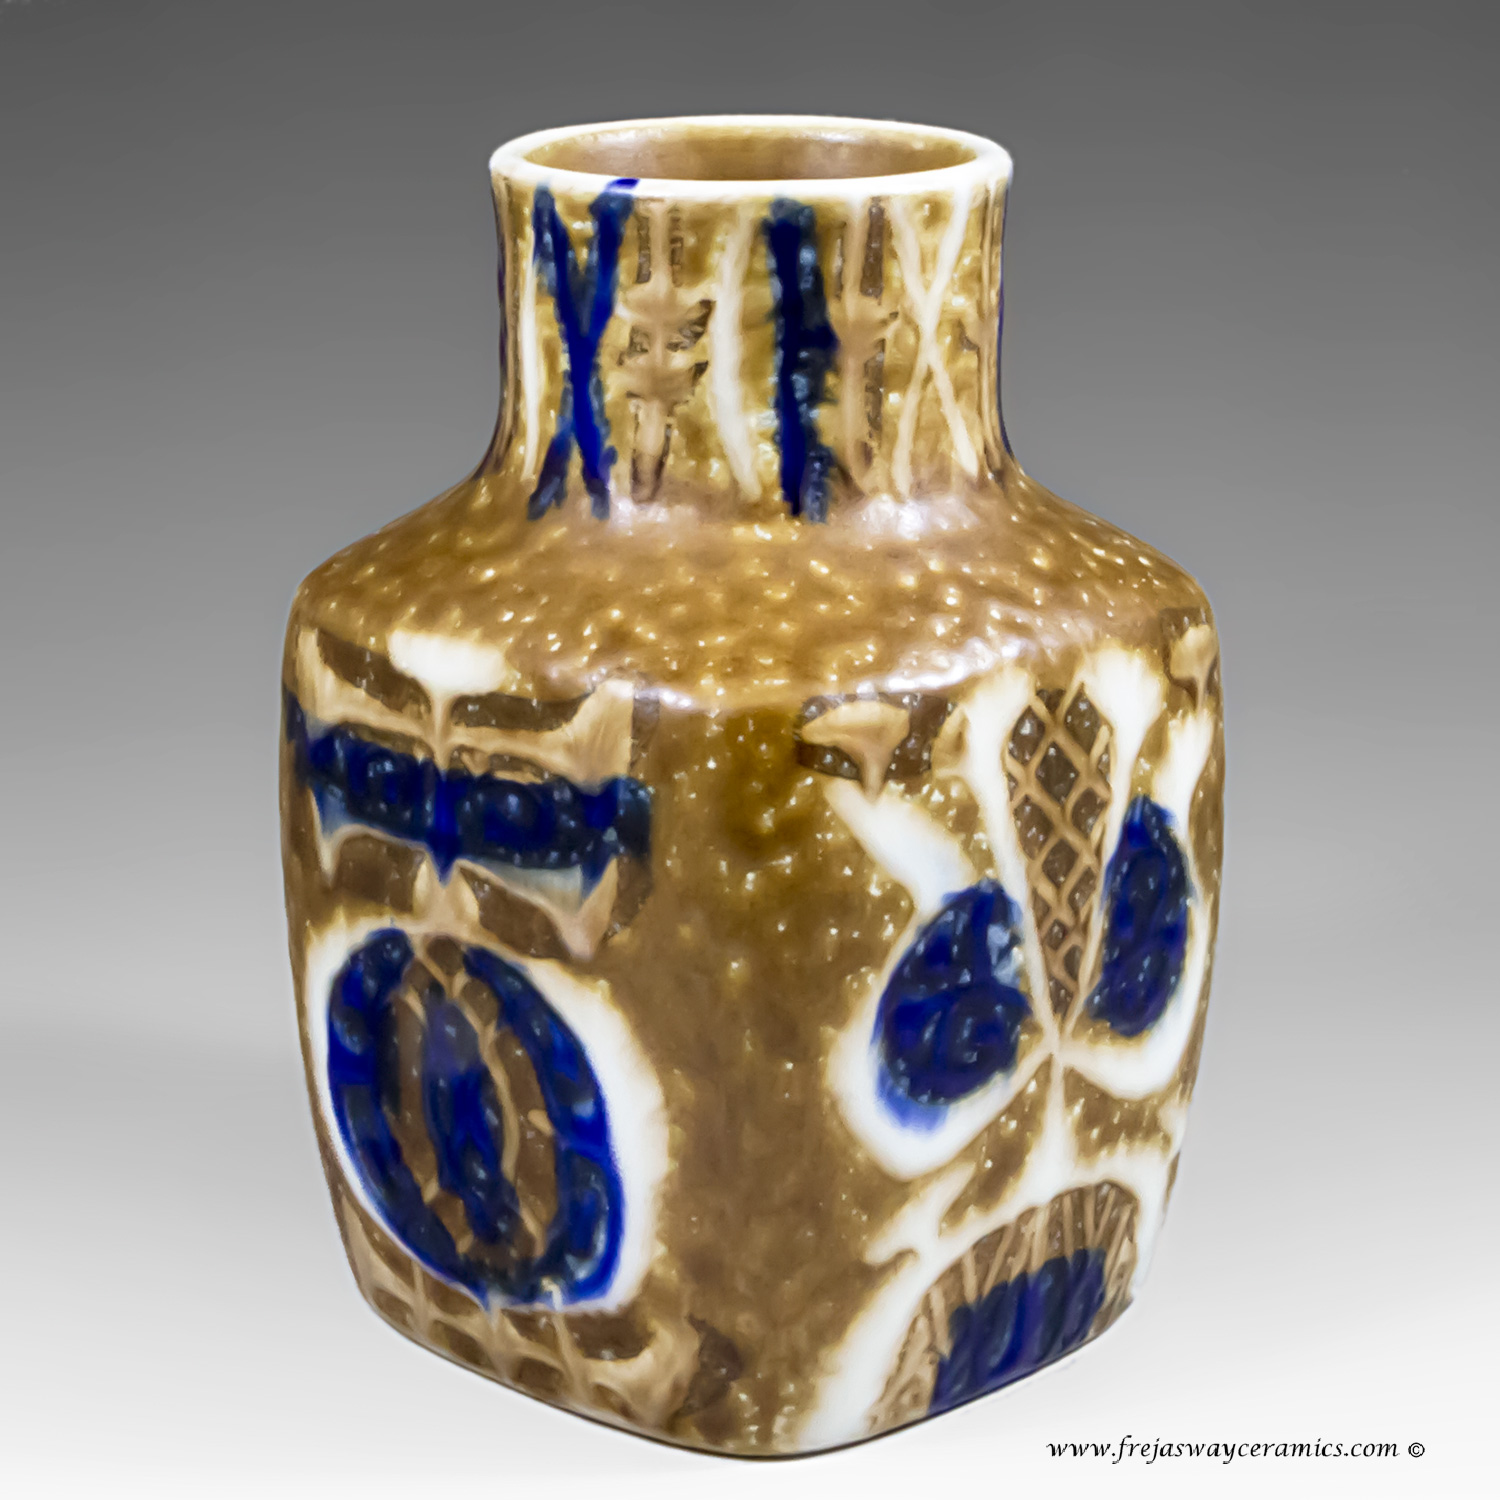 Royal copenhagen page 1 small baca vase by nils thorsson for royal copenhagen 720 over 3361 reviewsmspy